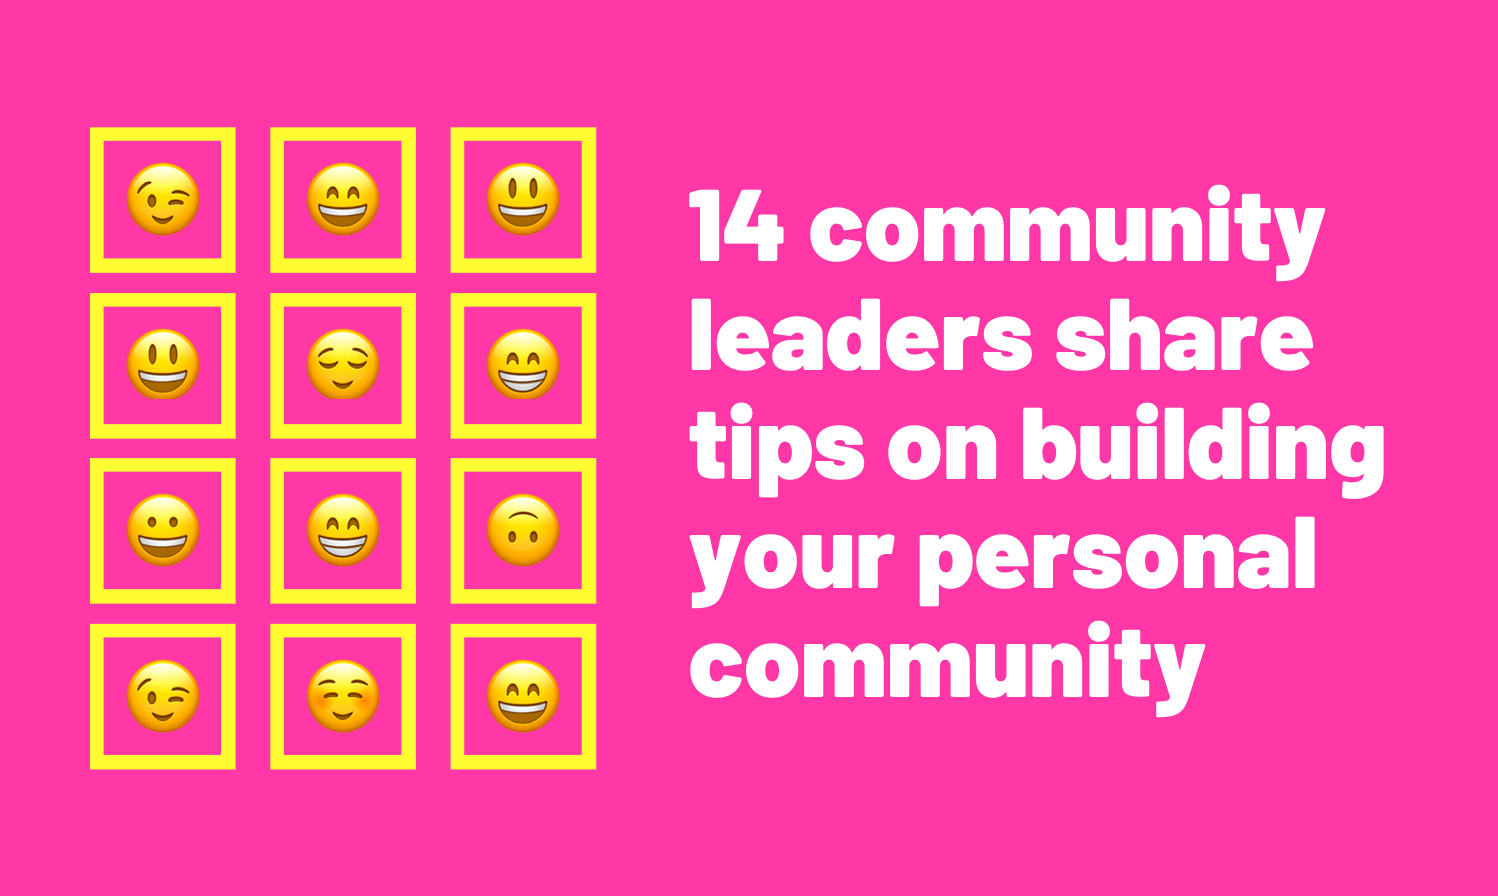 14 community leaders share tips on building your personal community